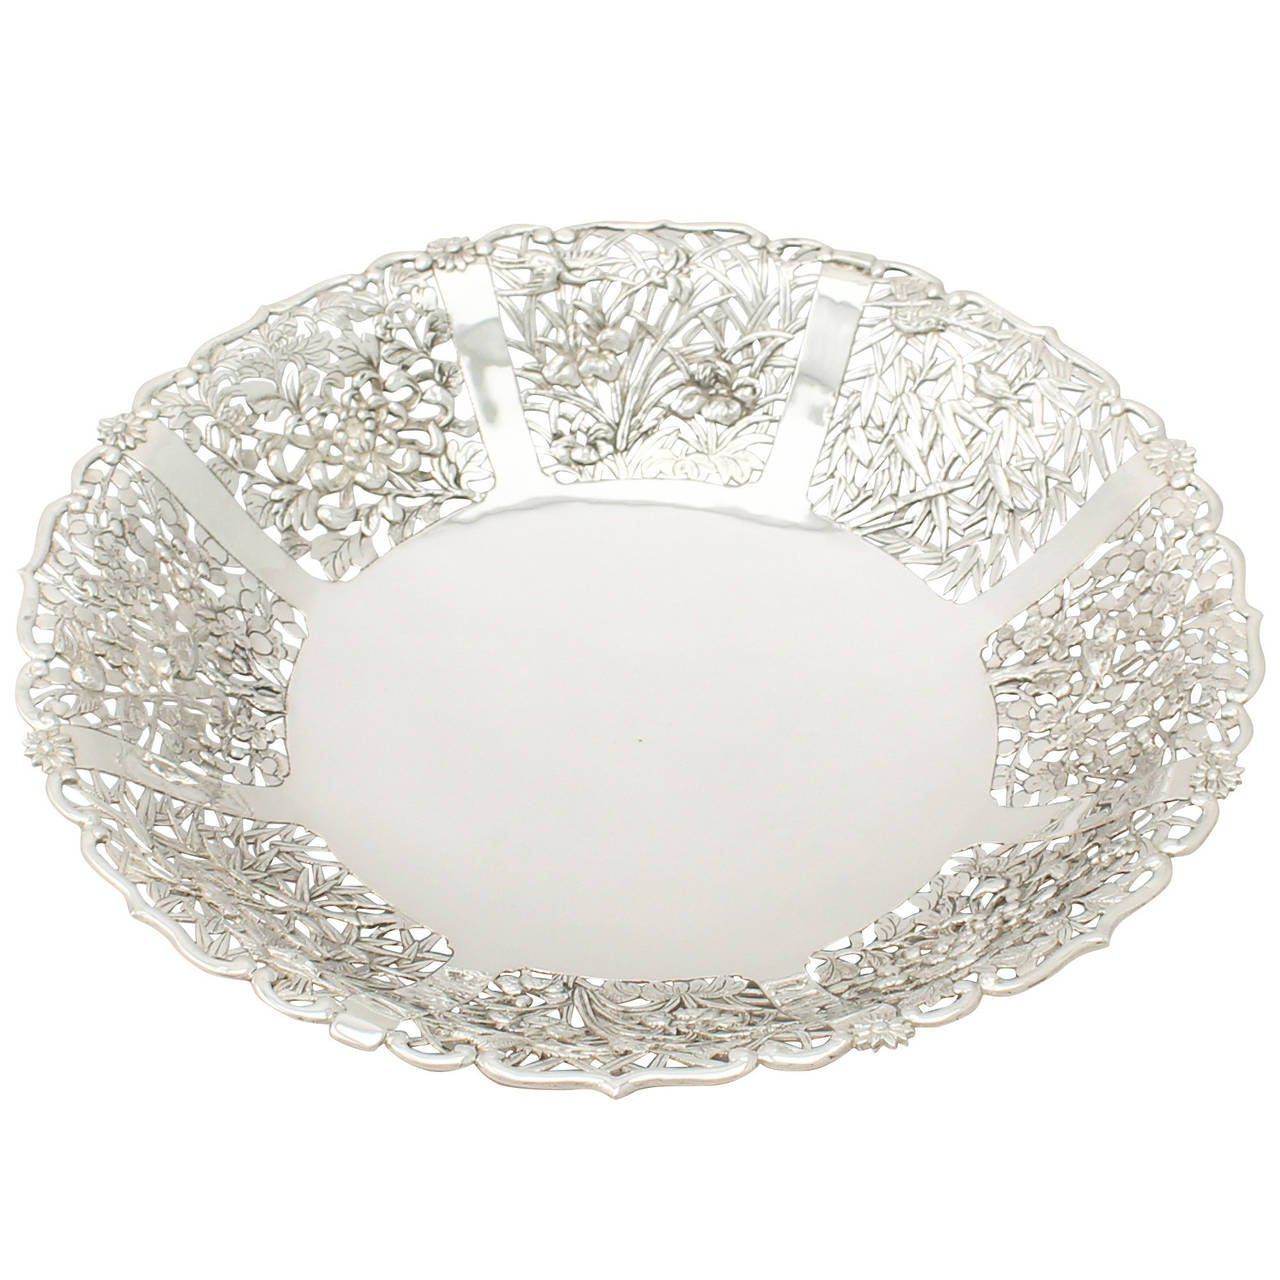 Chinese Export Silver Fruit Dish - Antique Circa 1880